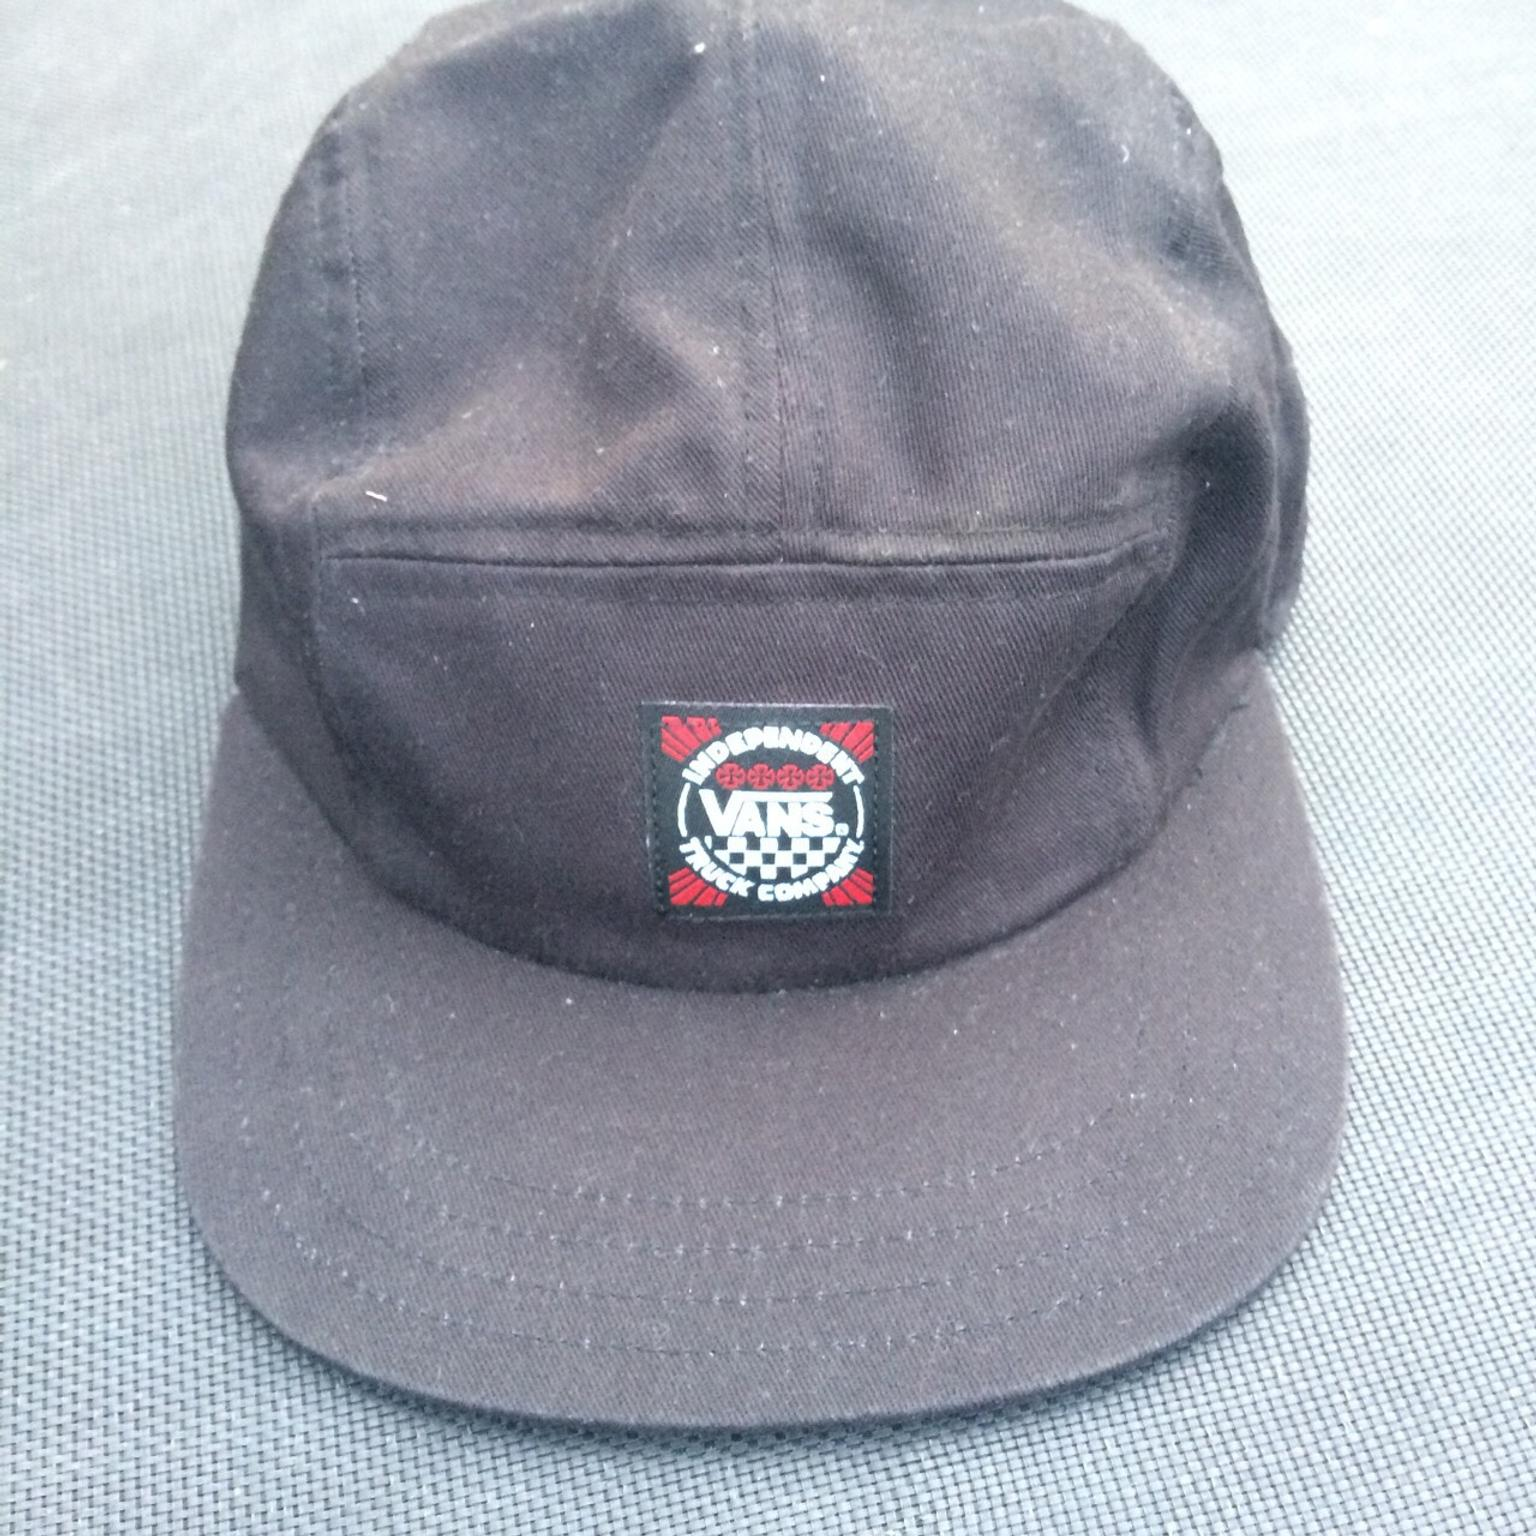 Vans x Independent trucks collab 5 panel cap in HP3 Dacorum for £10.00 for  sale - Shpock 40aac12f1f0